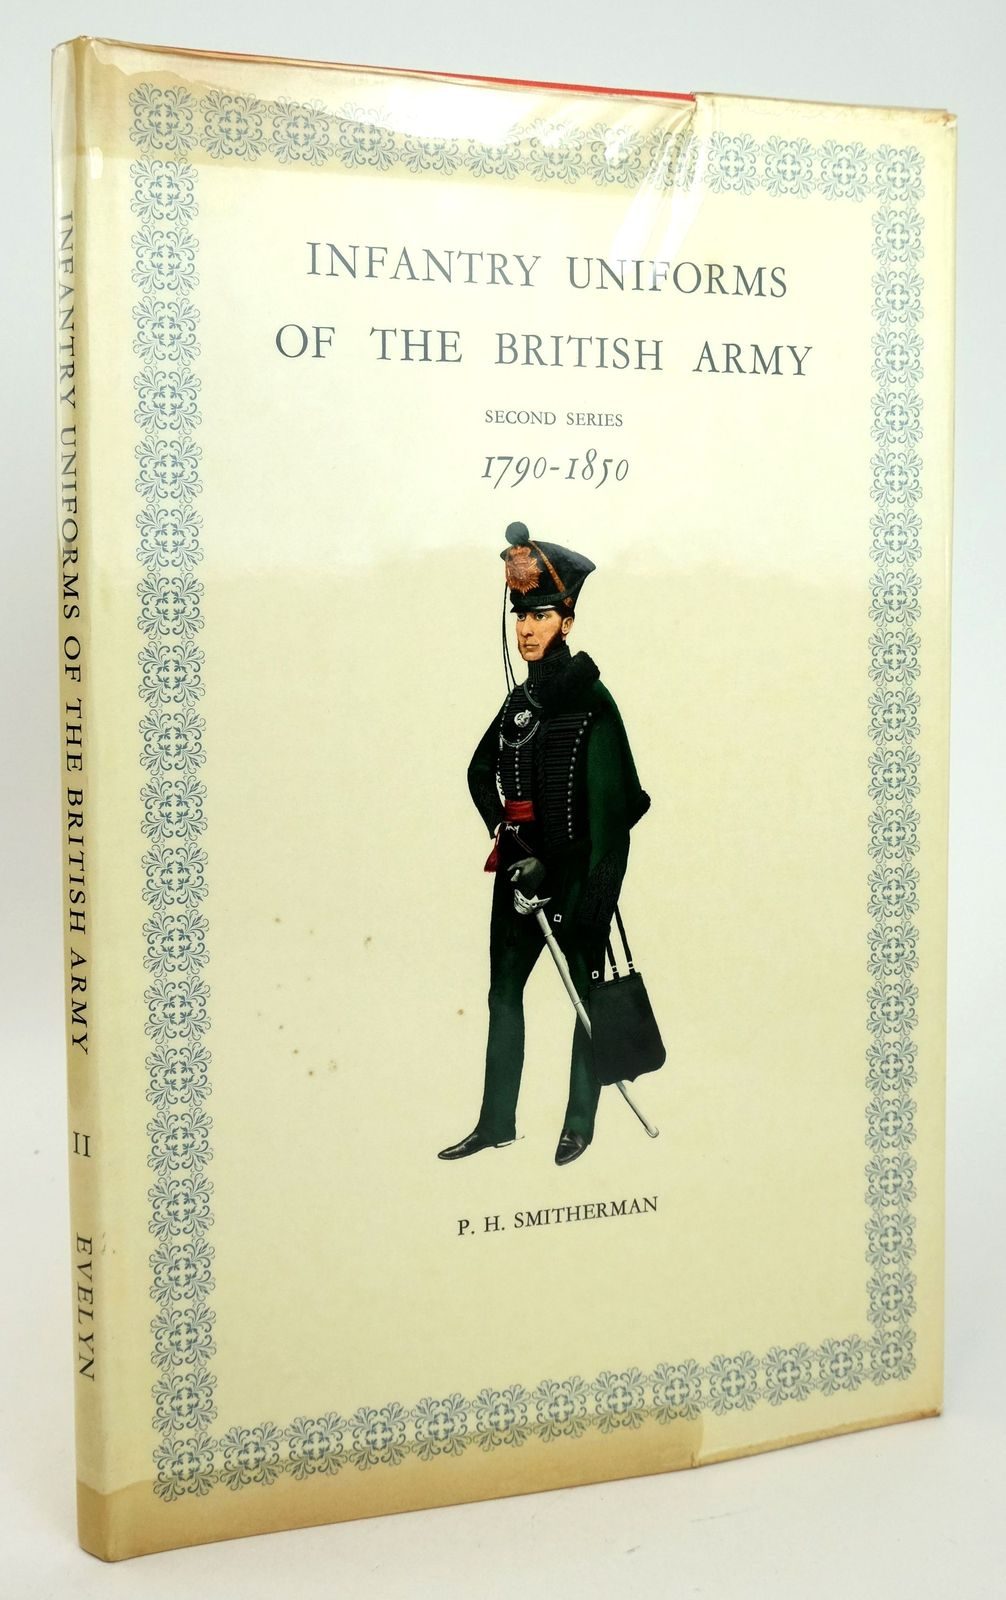 Photo of INFANTRY UNIFORMS OF THE BRITISH ARMY 1790-1850 written by Smitherman, P.H. illustrated by Smitherman, P.H. published by Hugh Evelyn (STOCK CODE: 1819982)  for sale by Stella & Rose's Books